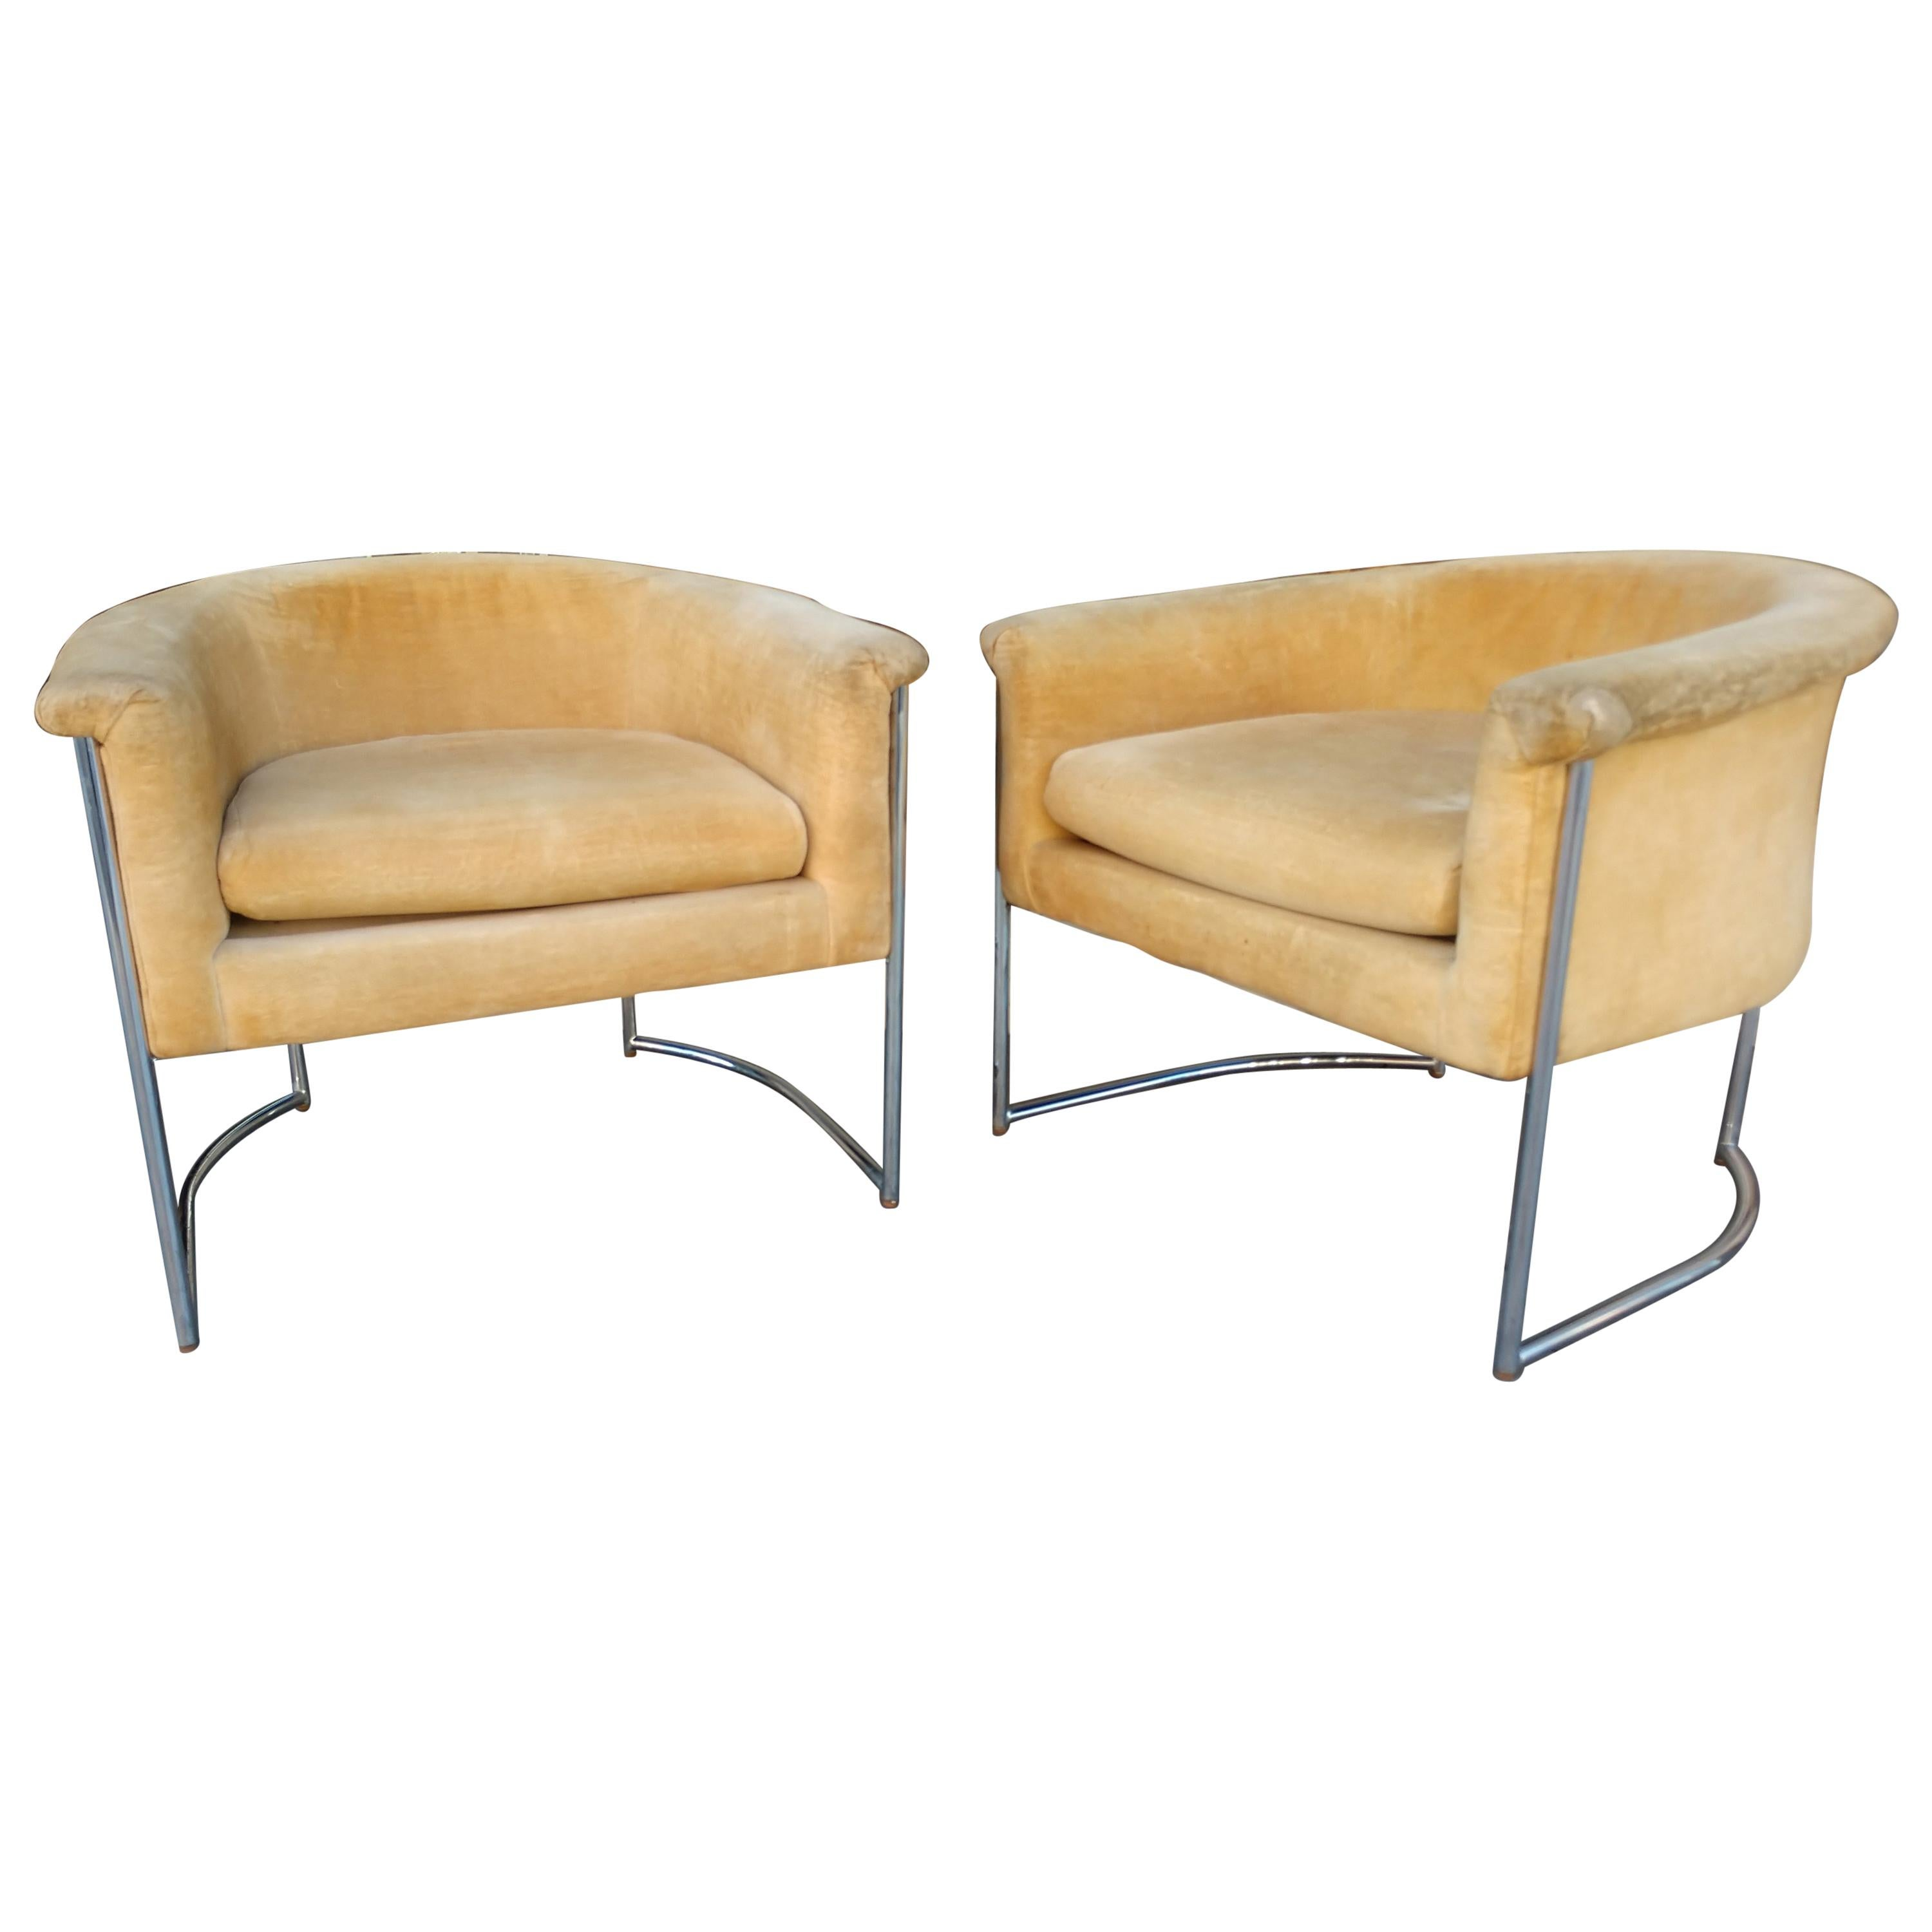 Pair of Mid-Century Modern Barrel Back Lounge Chairs